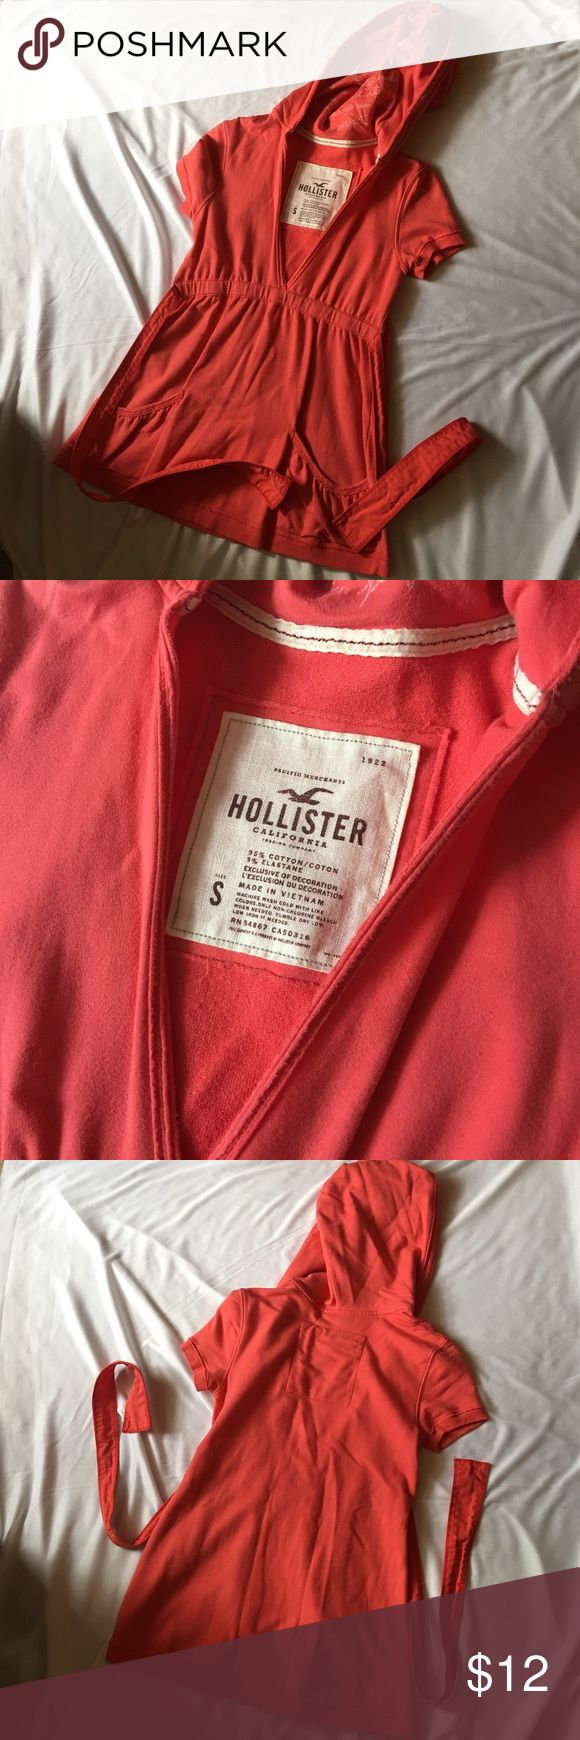 Vintage Hollister Short Sleeve Sweatshirt This is a gorgeous rare vintage short sleeve sweatshirt from Hollister. It is perfect as a shirt with a camisole underneath and ties in the back with a bow. There is some piling and minor discoloration as shown in the last picture. The color is a peachy pink and truest to the last picture. Hollister Tops Sweatshirts & Hoodies